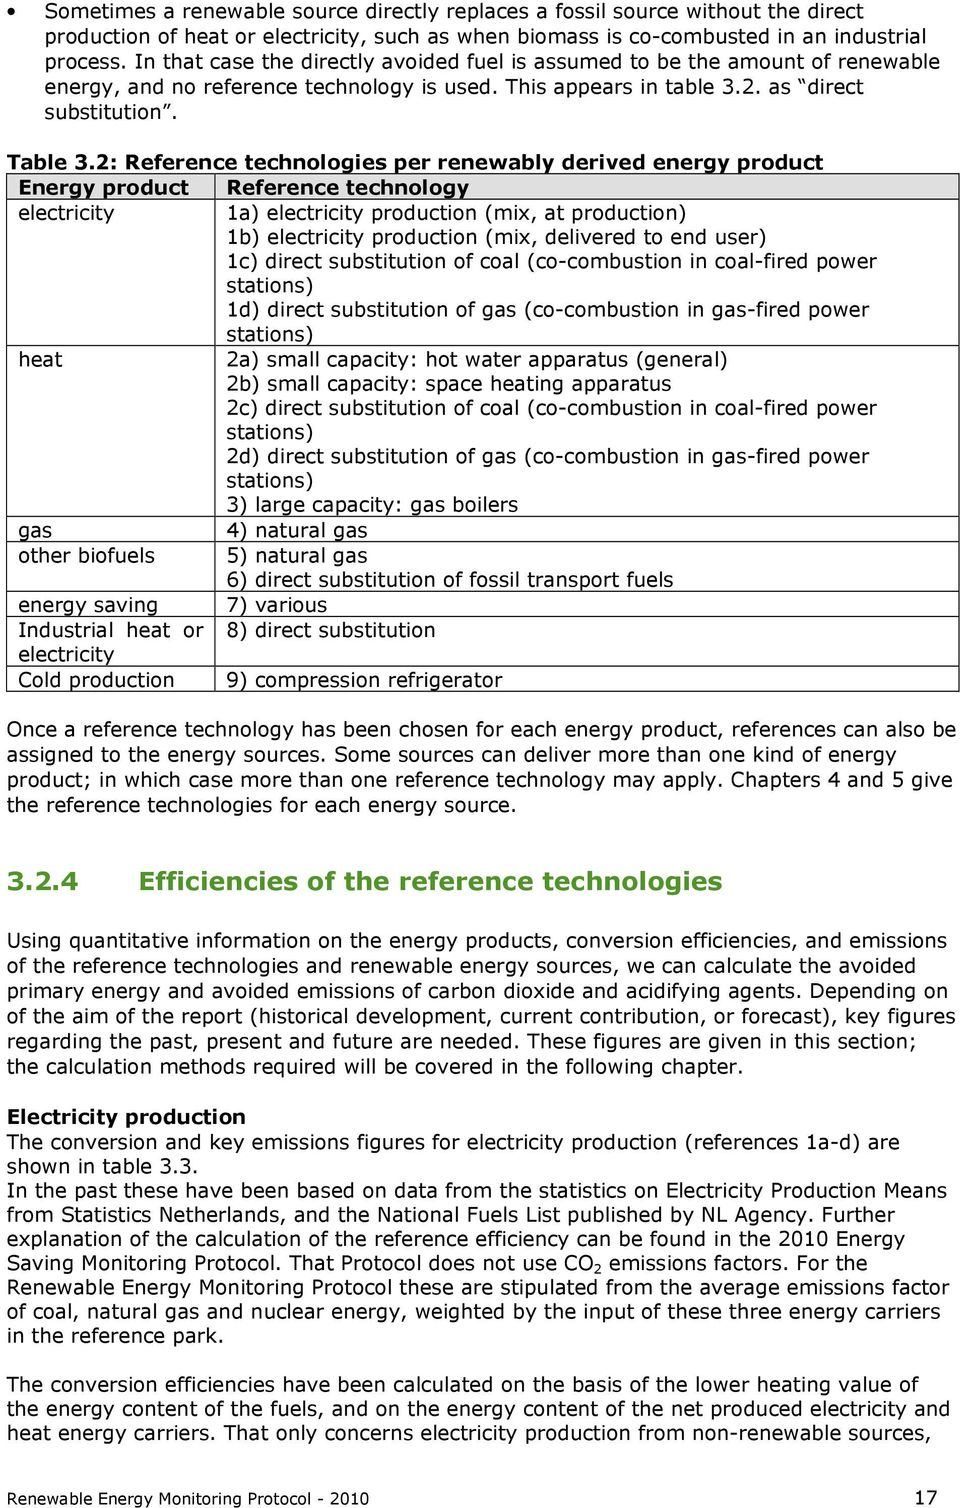 2: Reference technologies per renewably derived energy product Energy product Reference technology electricity 1a) electricity production (mix, at production) 1b) electricity production (mix,